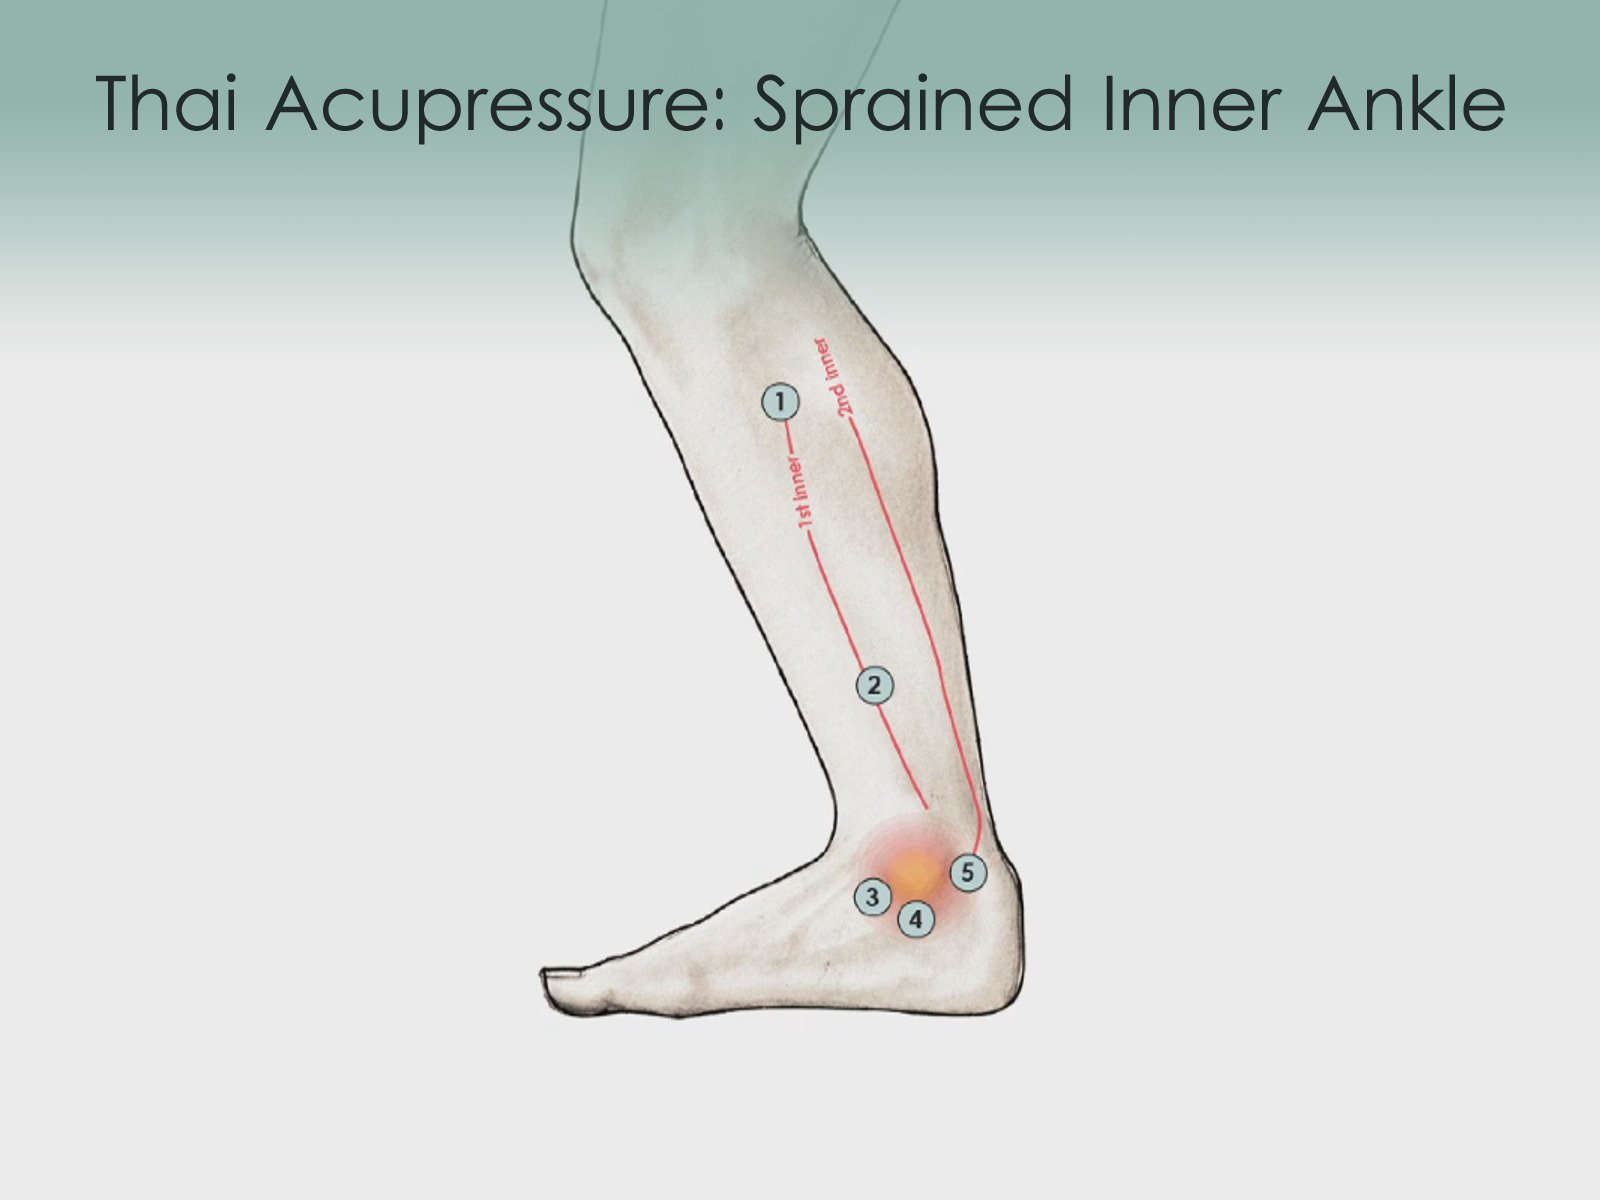 Treatment Routine 53 - Sprained Inner Ankle by